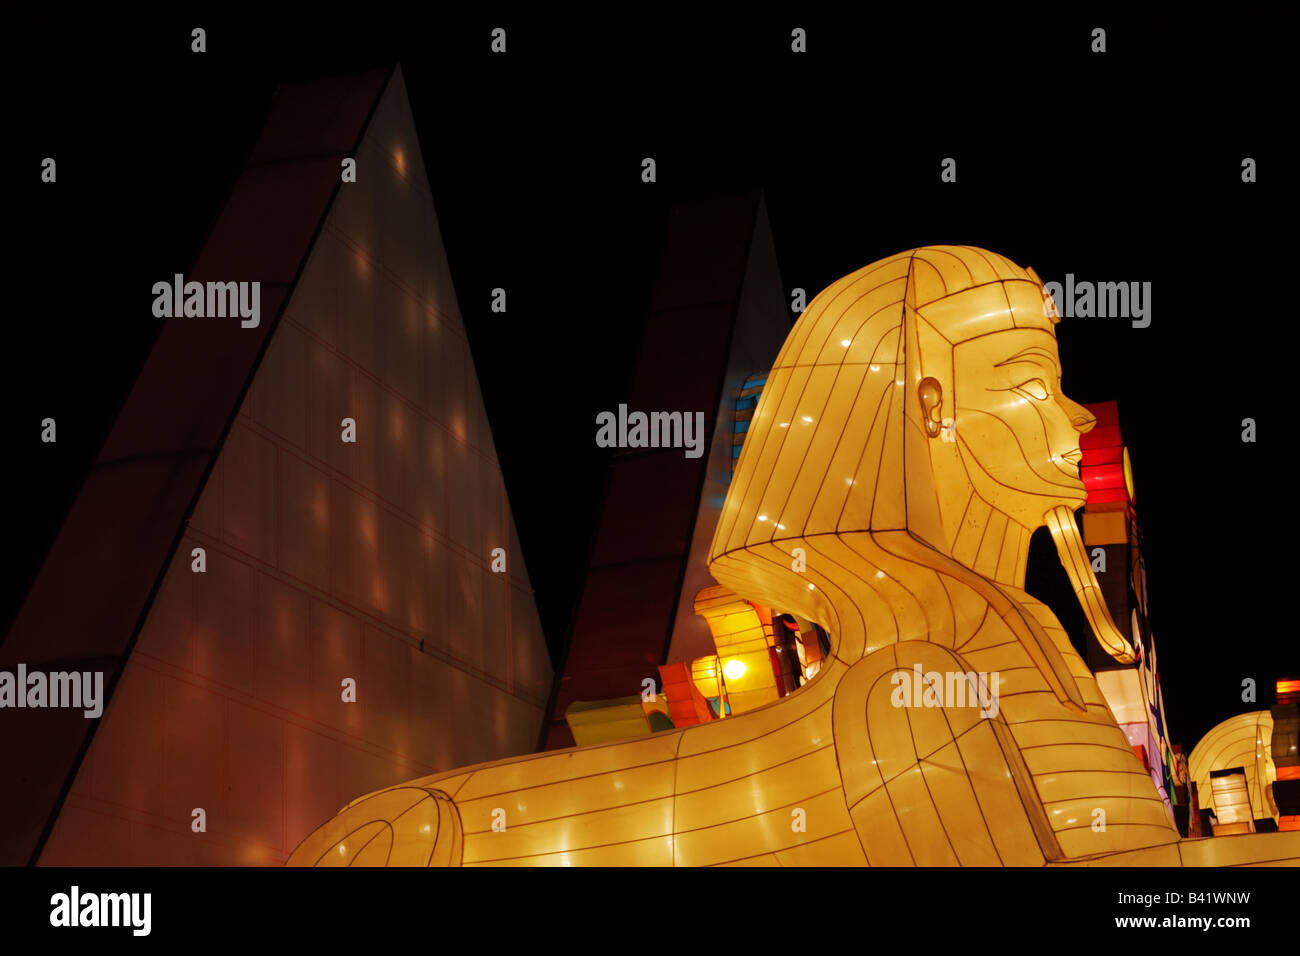 Sphinx and Pyramid in 2008 Toronto Chinese Lantern Festival featuring craft lanterns from Zigong Sichuan China - Stock Image